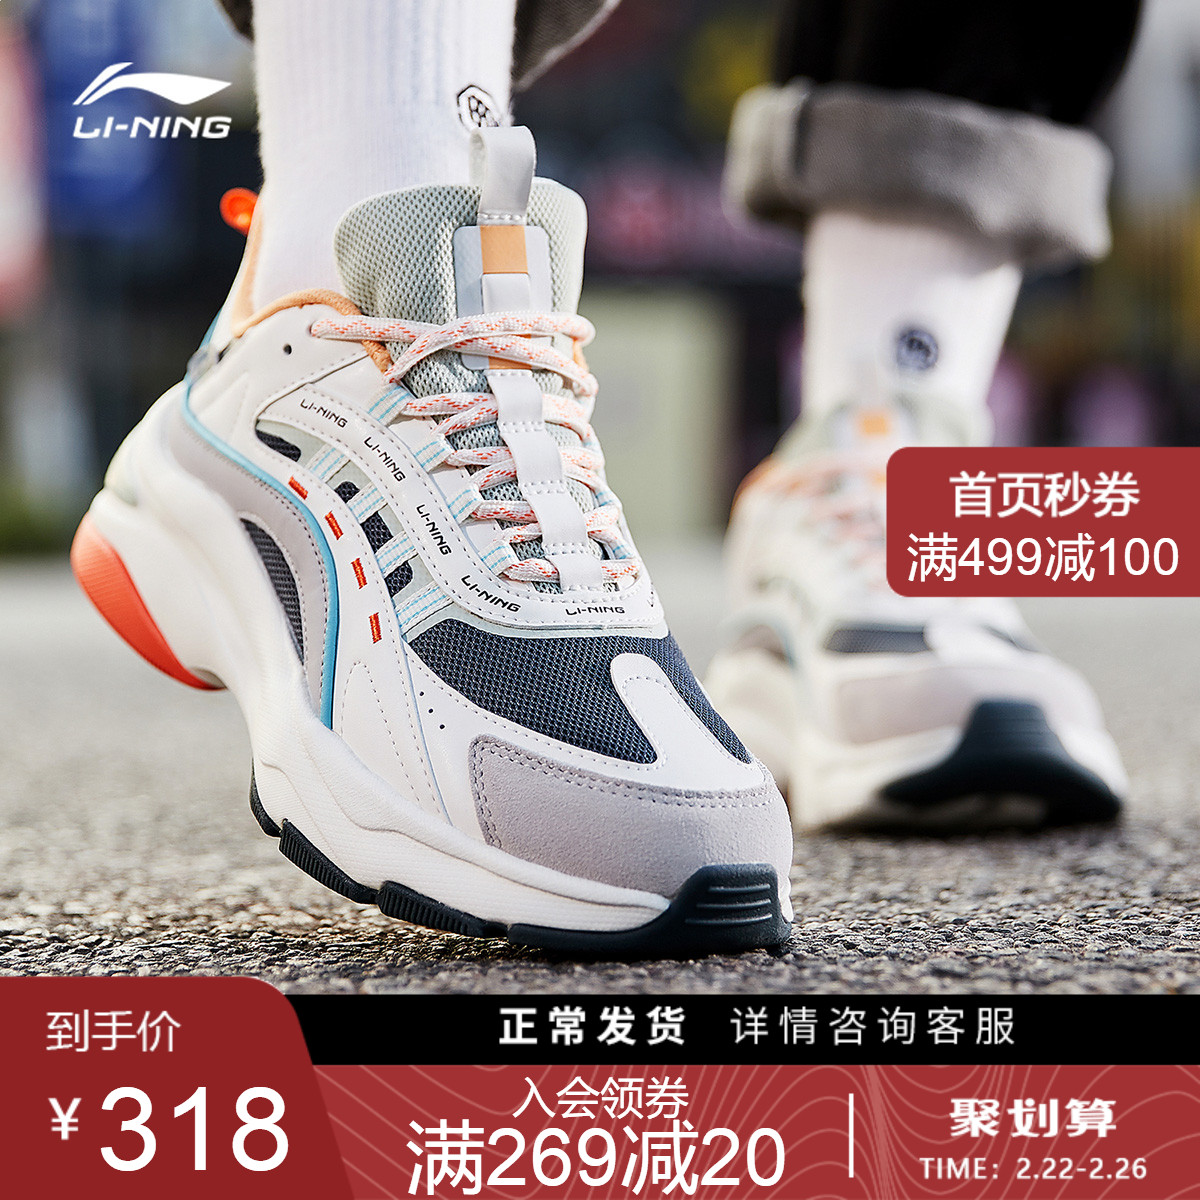 Li Ning casual shoes women's shoes 2020 spring new sports shoes student fashion trend low help retro old father shoes women